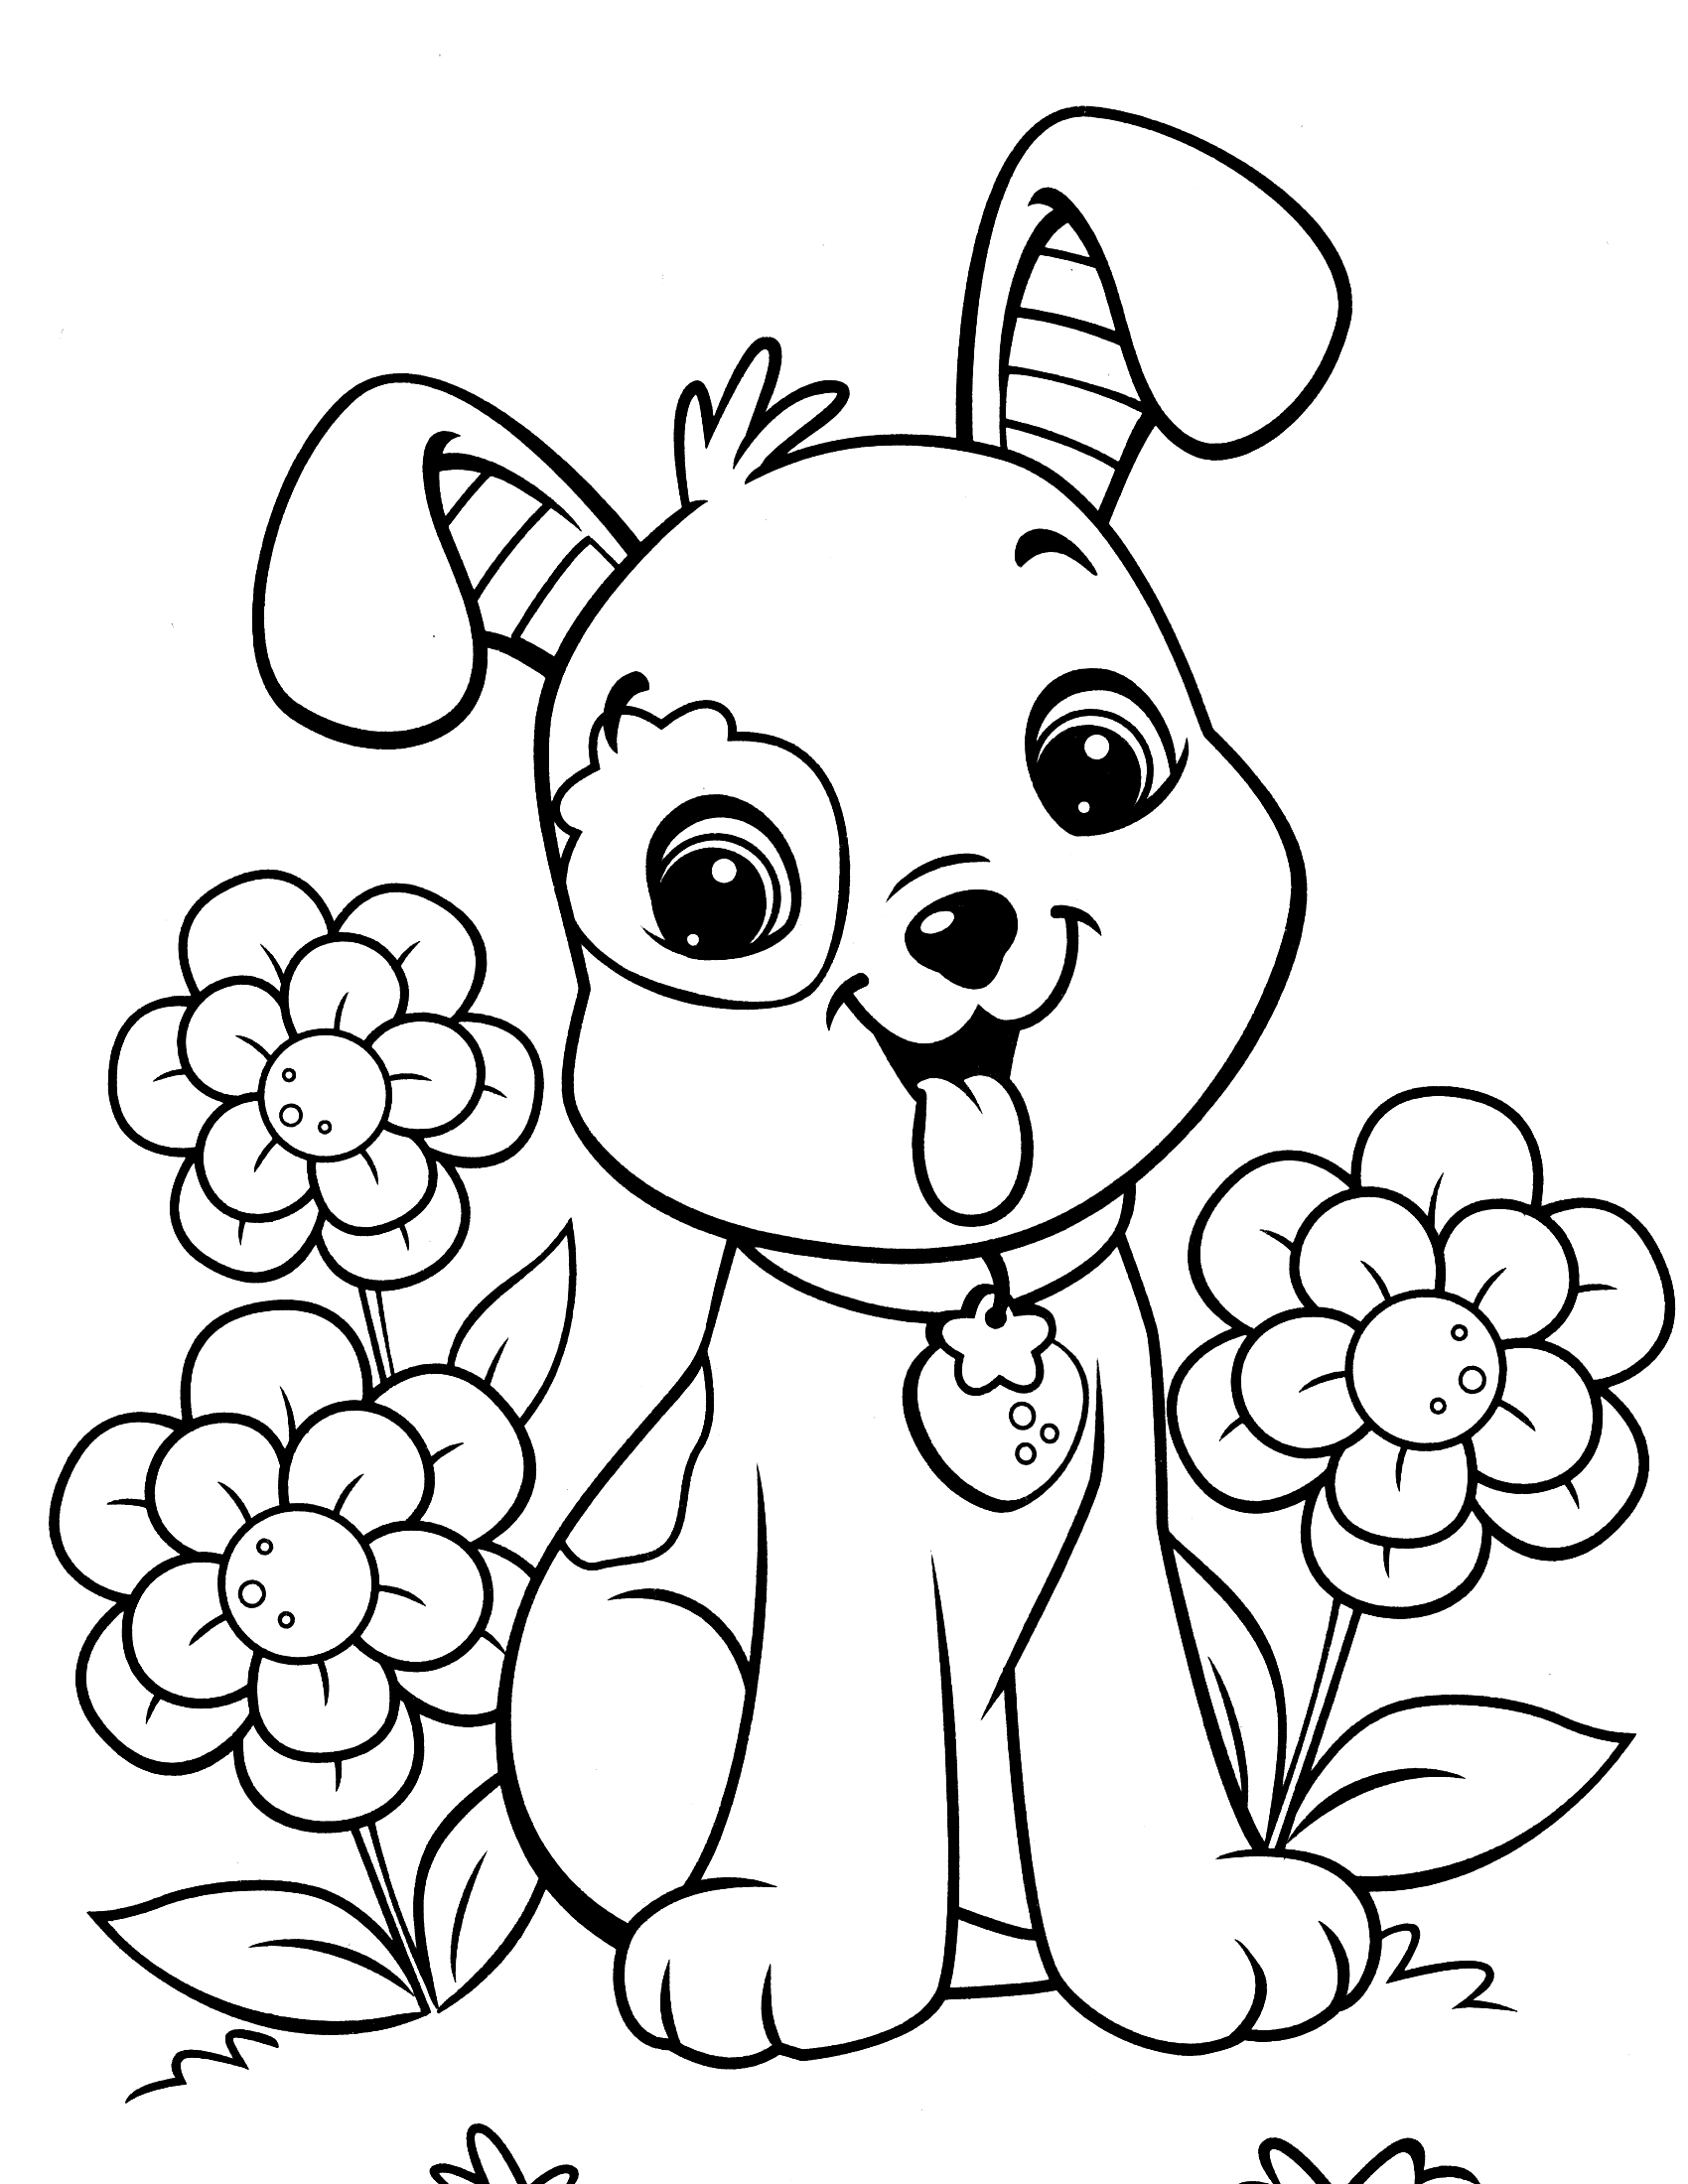 coloring pics of dogs dog coloring pages for kids preschool and kindergarten dogs of pics coloring